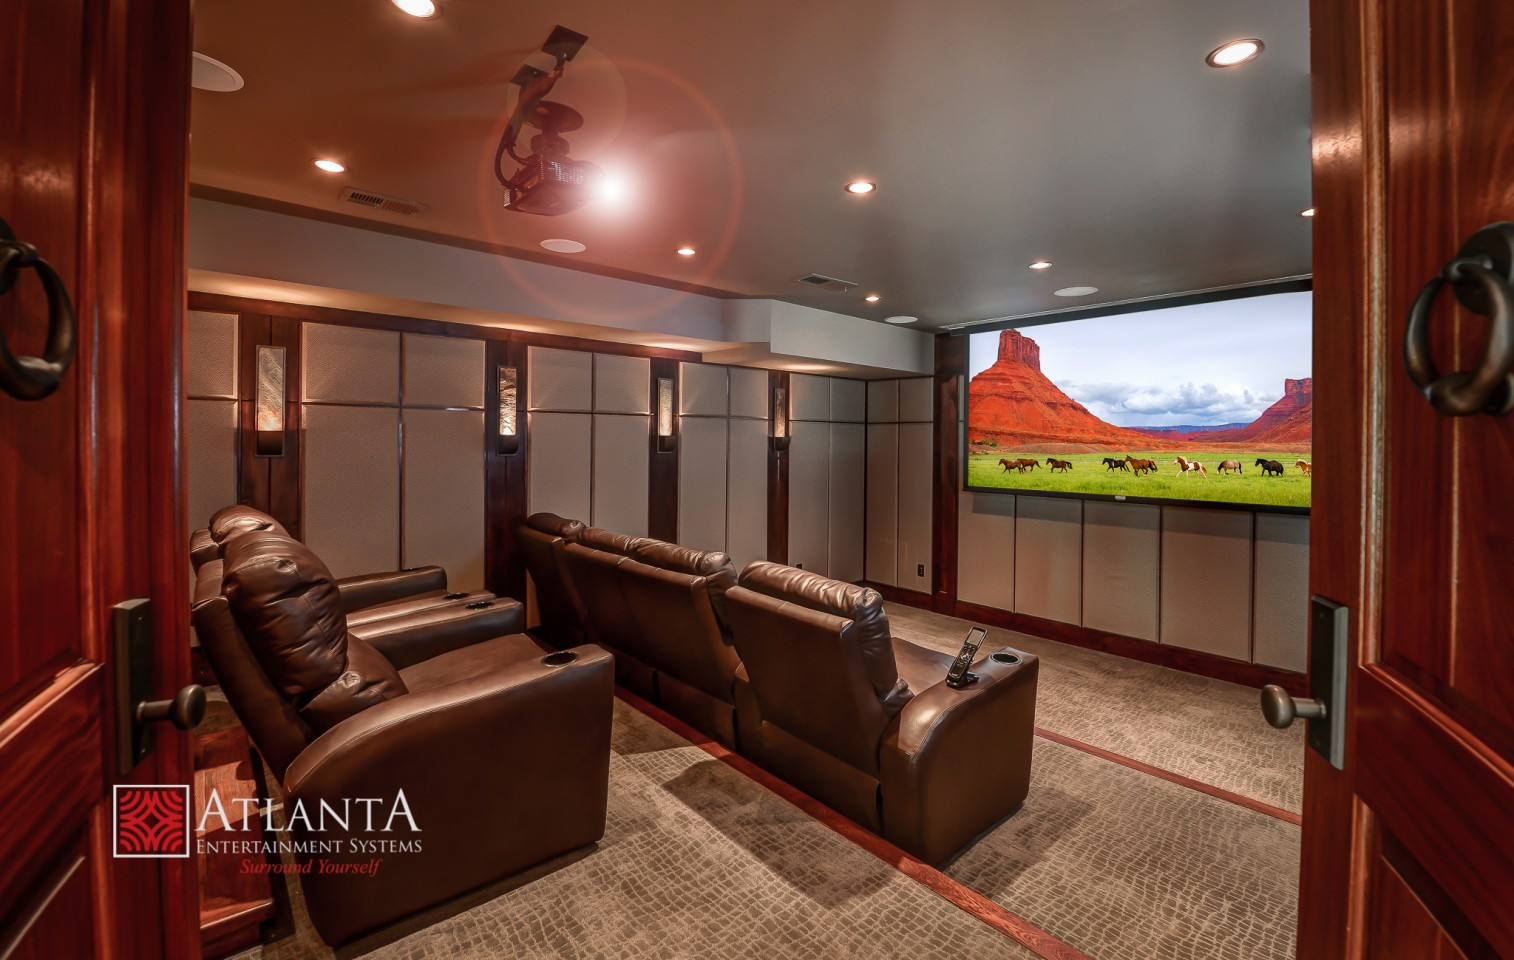 Home Theaters & Media Rooms